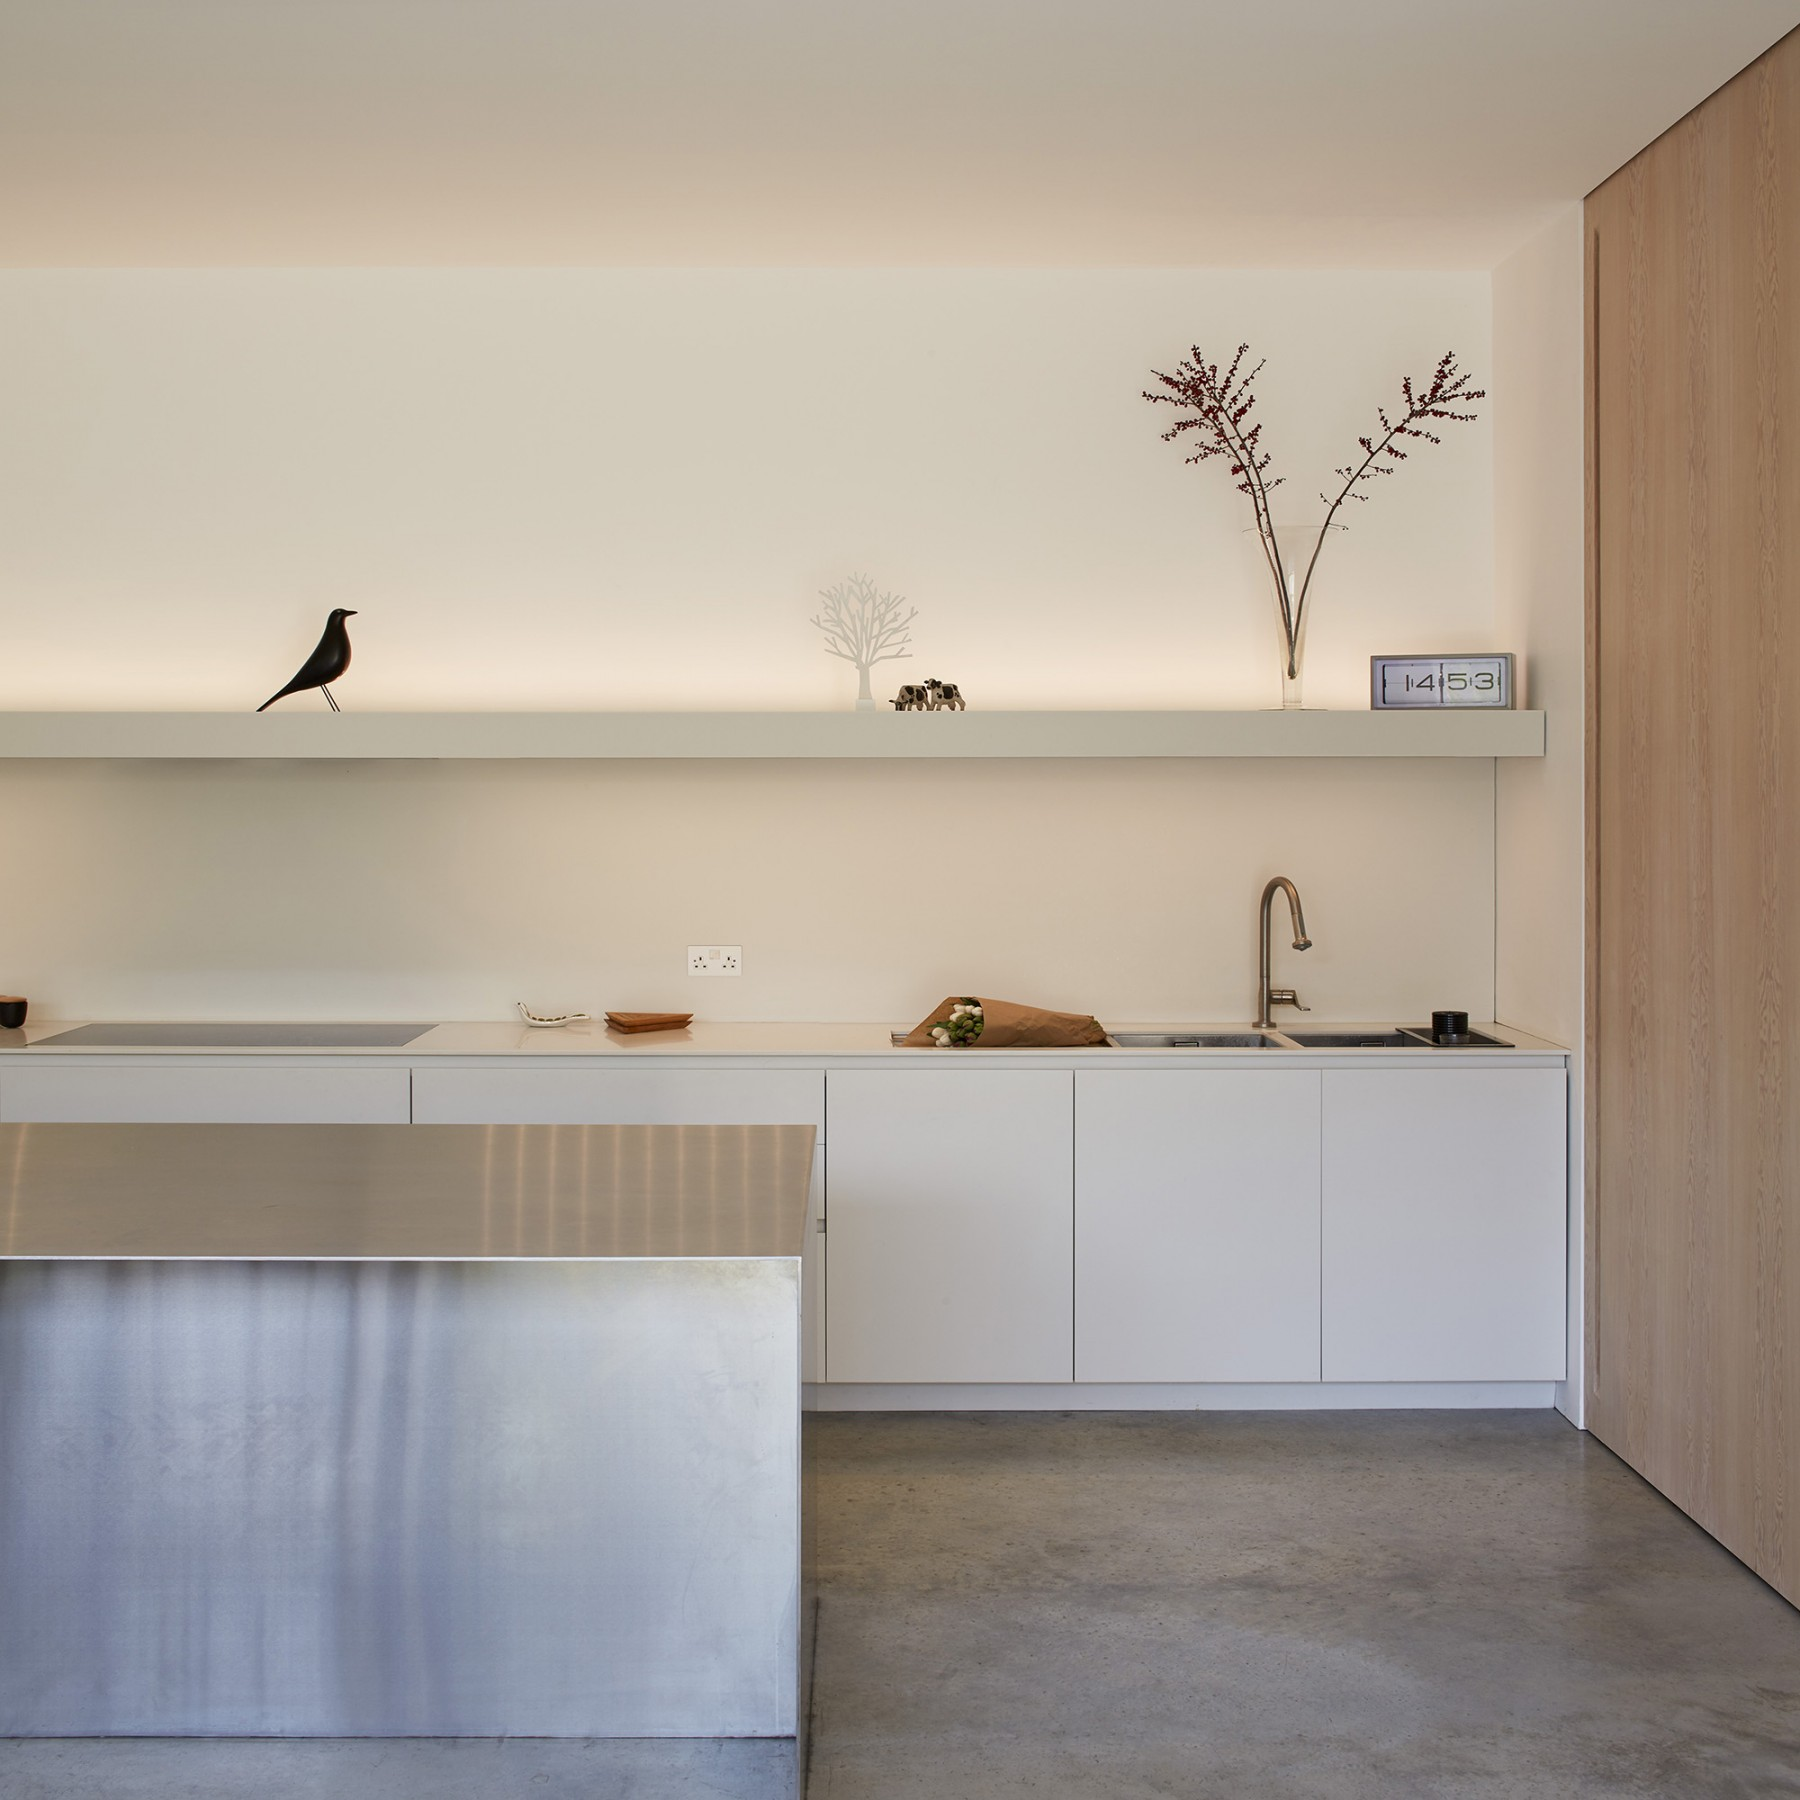 Luker-House-contemporary-modern-London-house-Barnes-Jamie-Fobert-Architects-RIBA-Award-Kitchen-Concrete (2)1